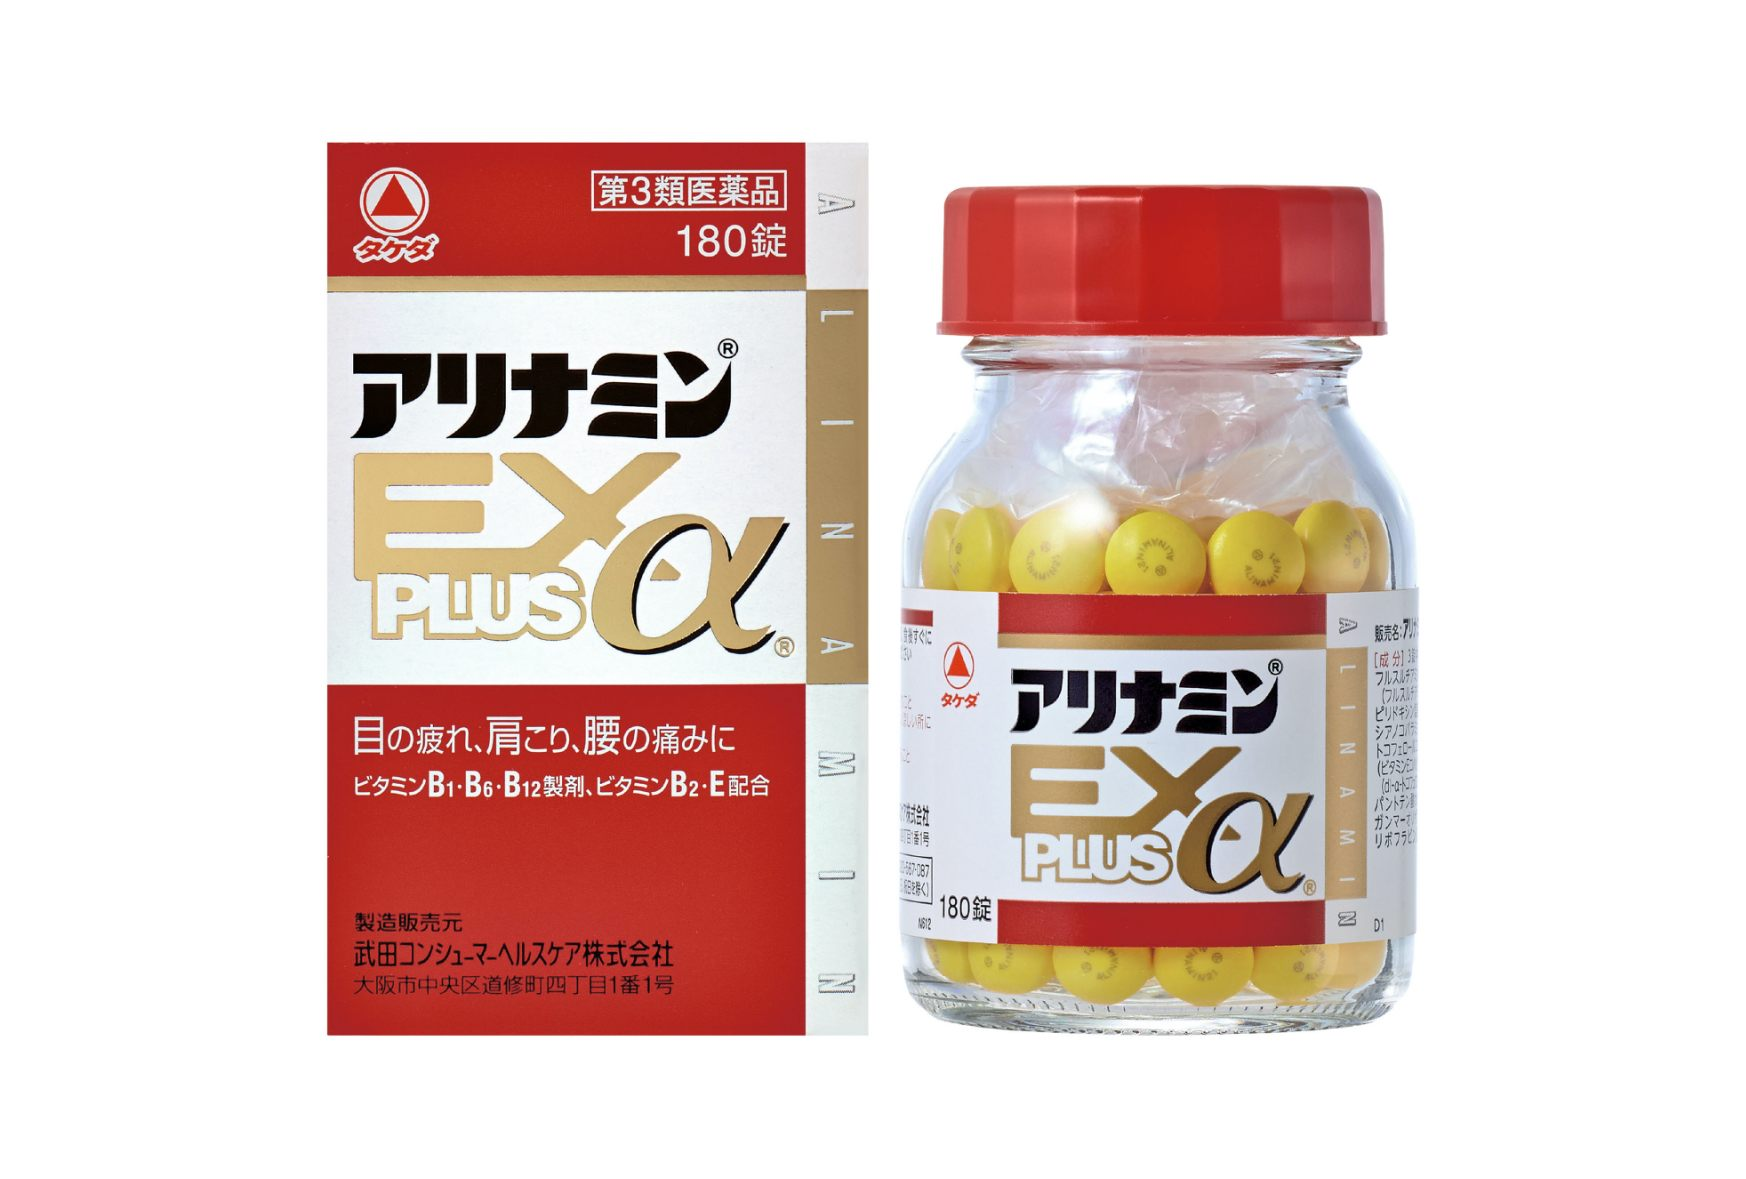 Alinamin EX Plus α (Class 3 Pharmaceuticals), Got problems with eye fatigue or stiff shoulders/hips?